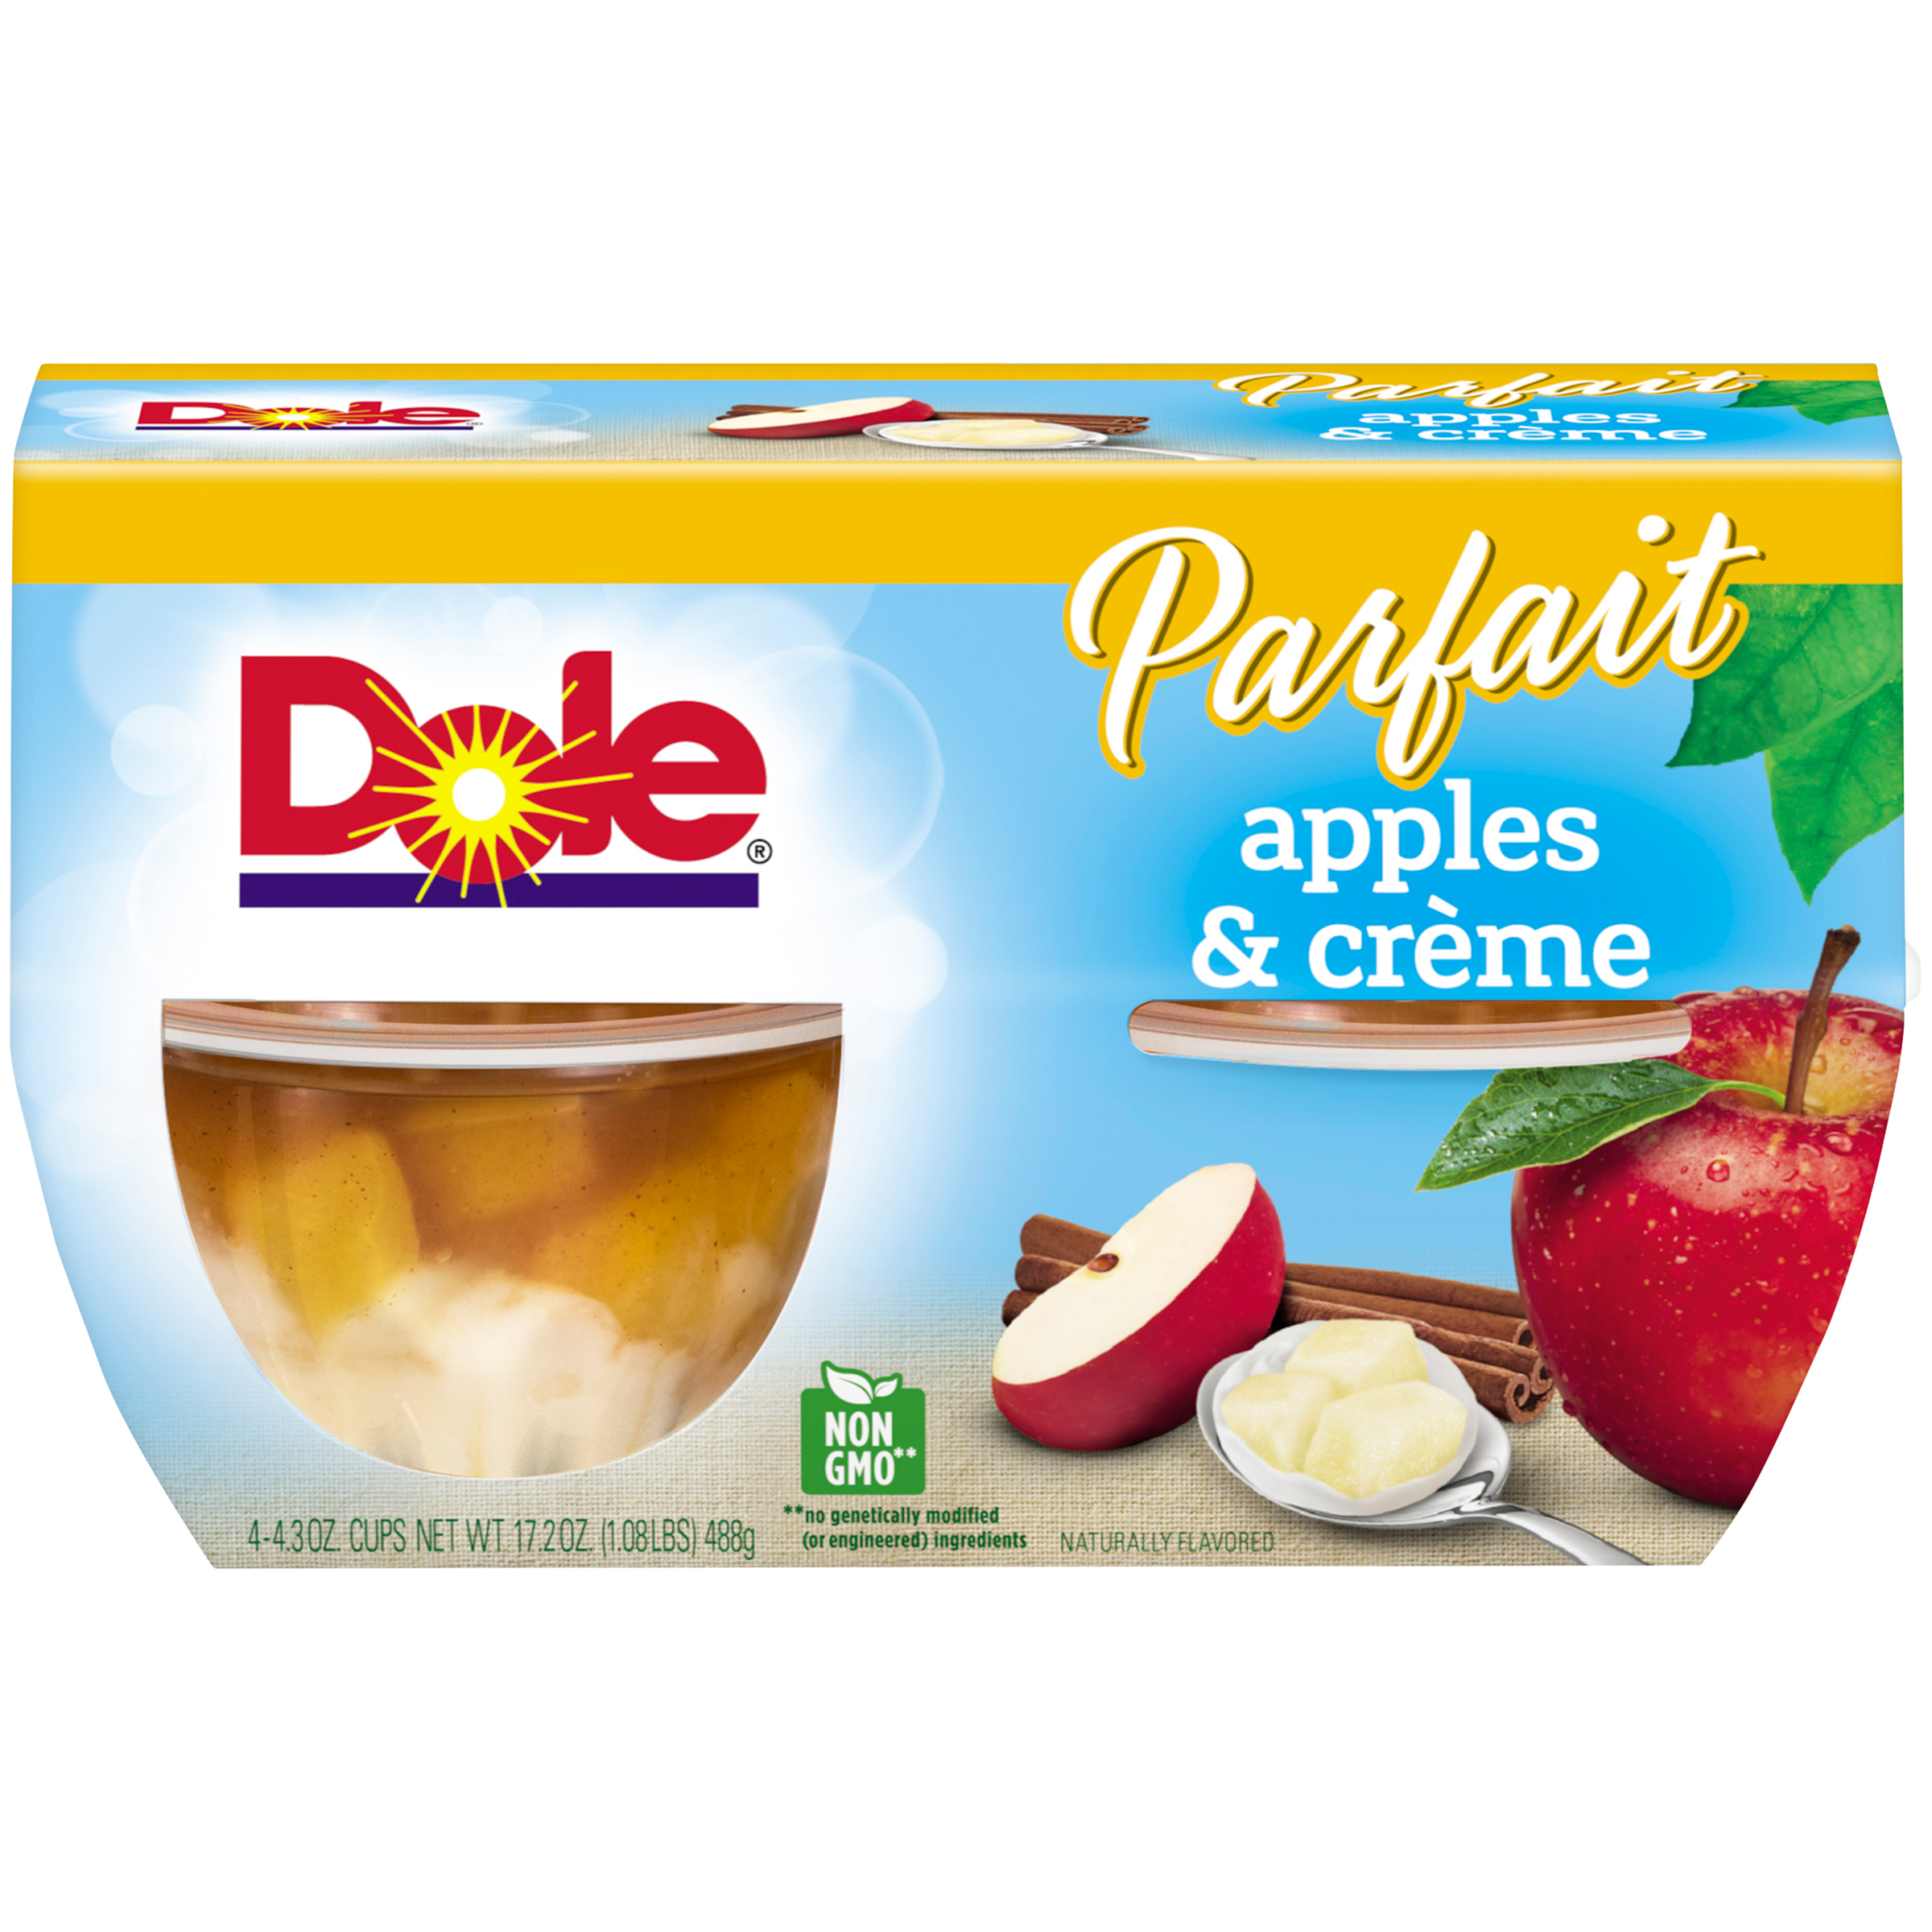 Dole Fruit Bowls, Apples & Creme Parfait, 4.3 Ounce (4 Cups)